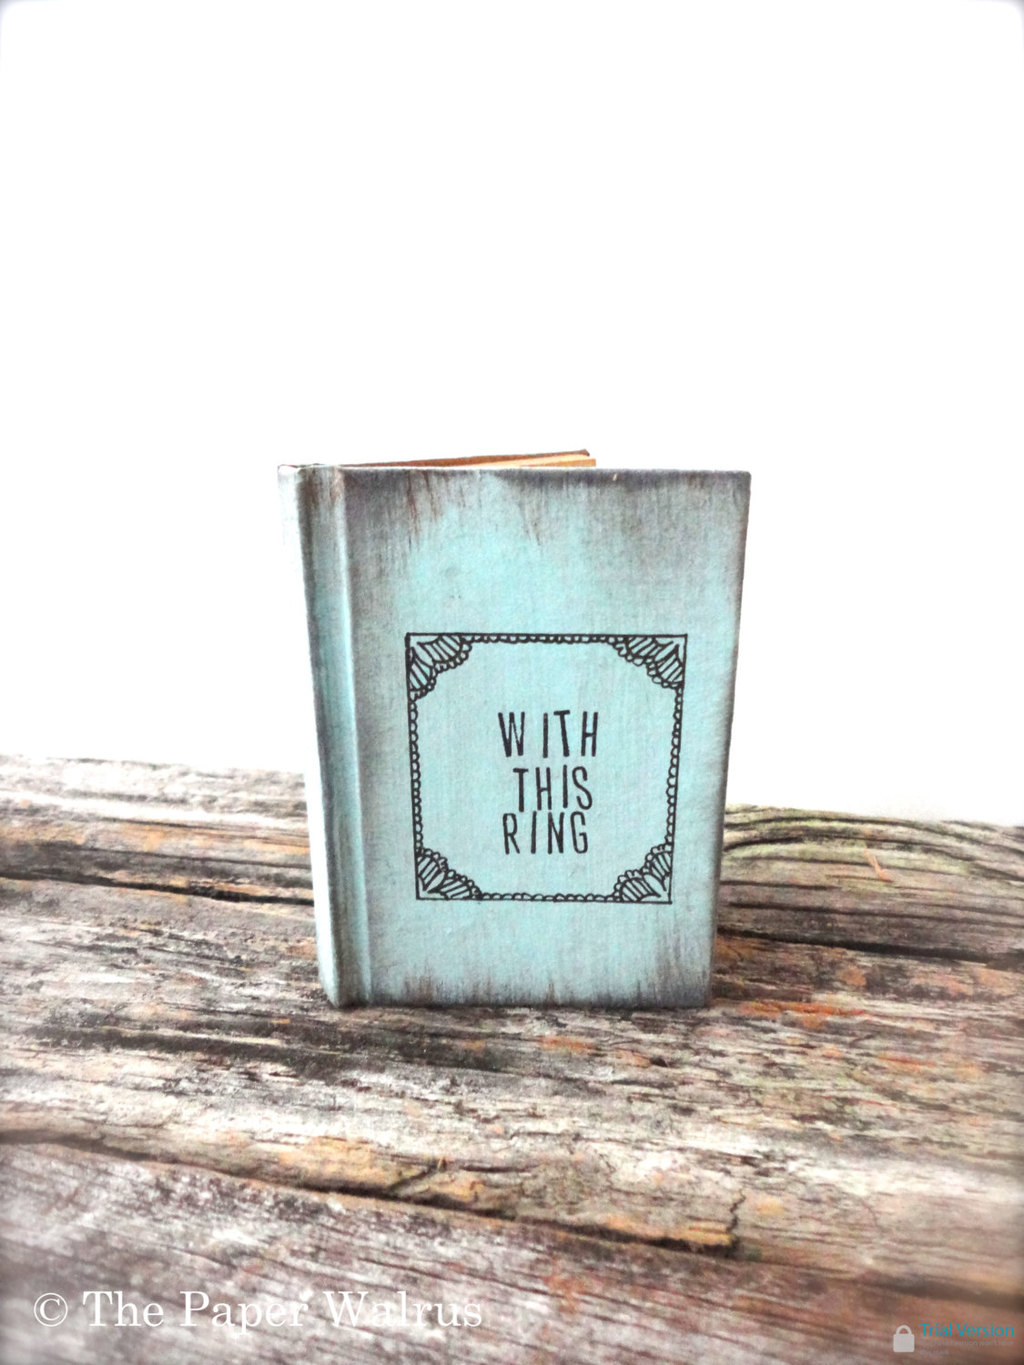 With This Ring wedding ceremony ring bearer box